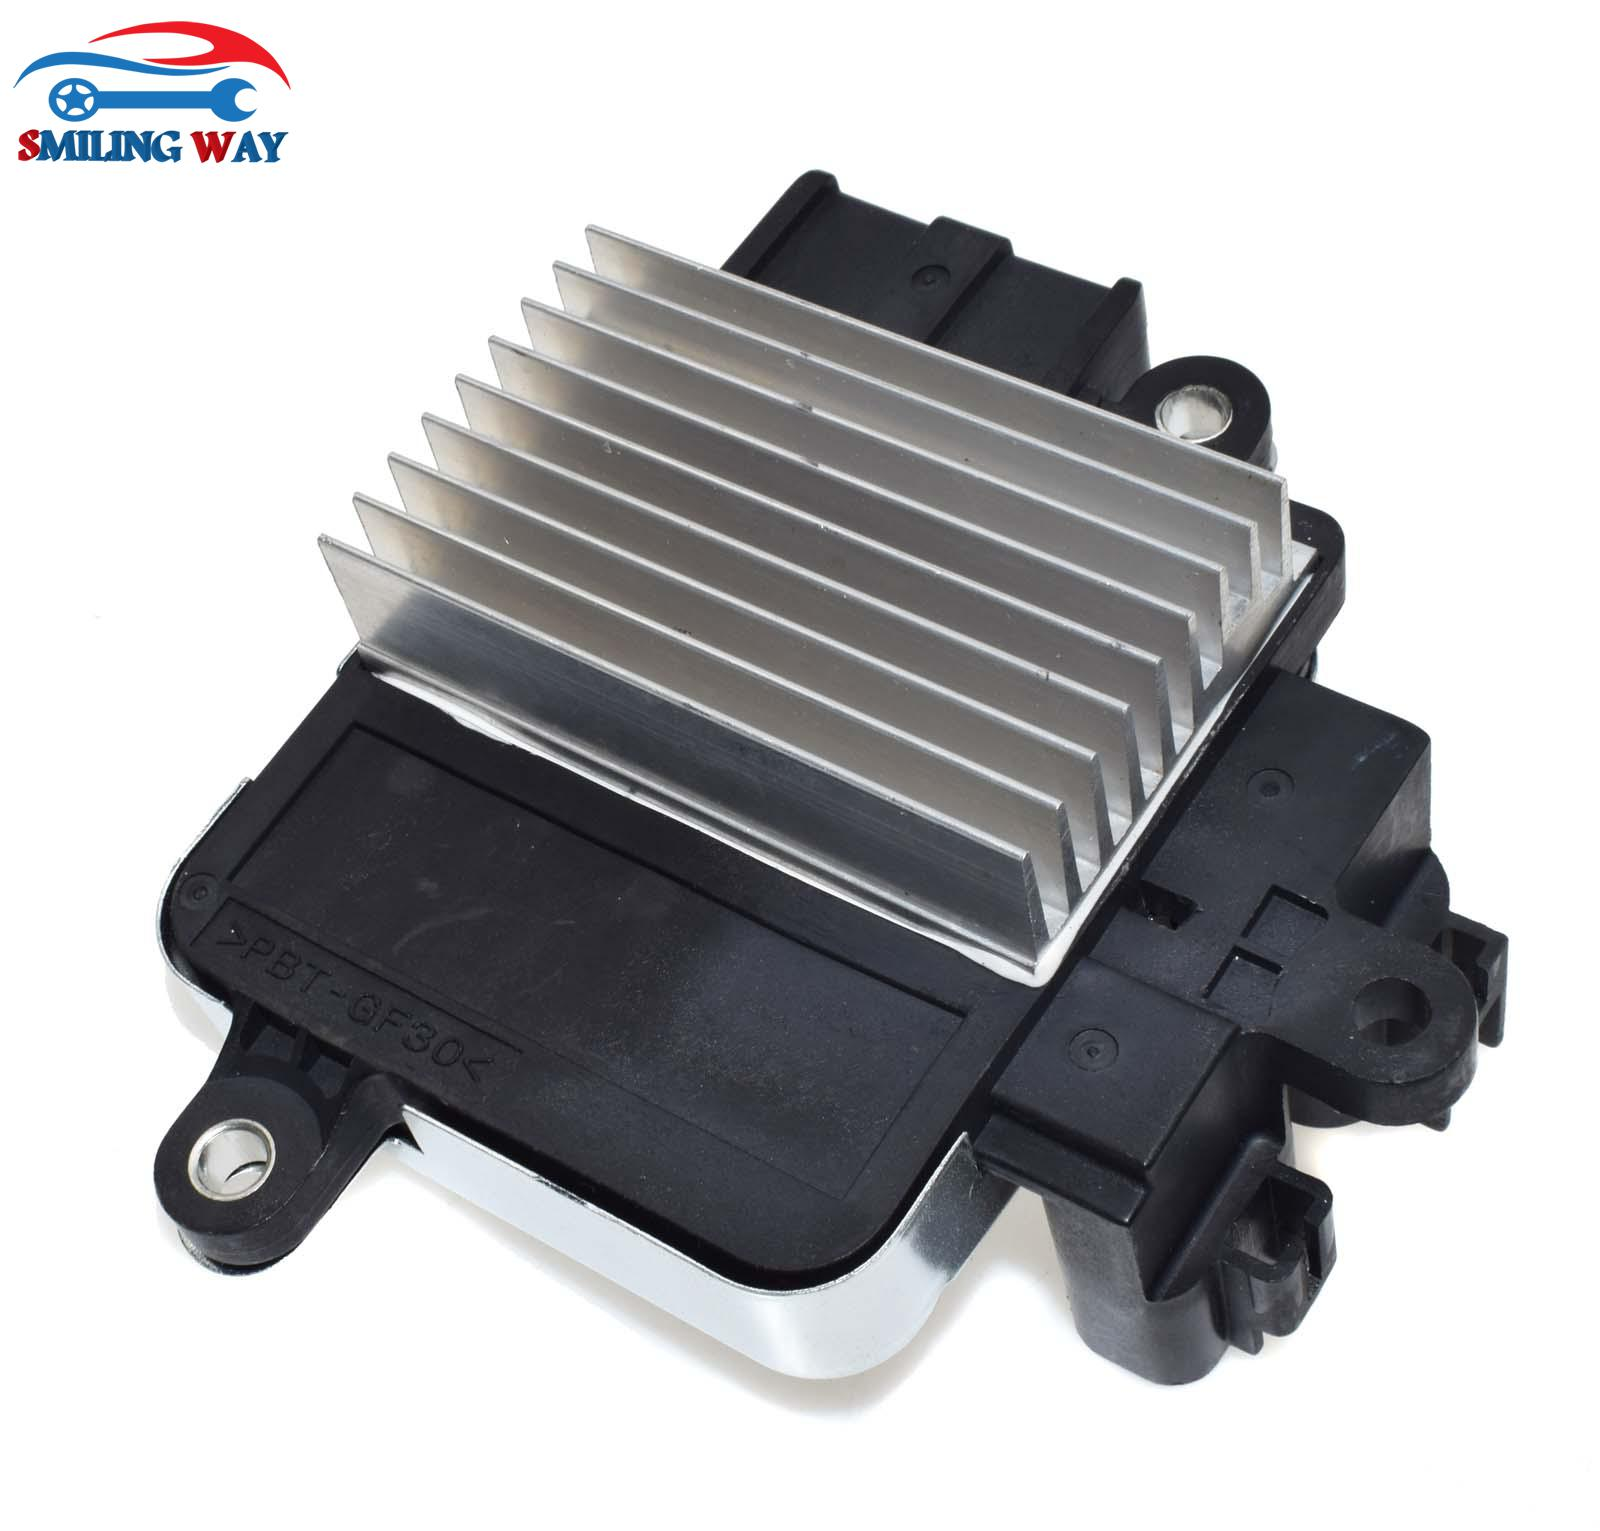 small resolution of smiling way blower motor resistor for toyota camry highlander venza avalon rav4 sienna lexus es350 gs300 gs350 gs430 gs450h